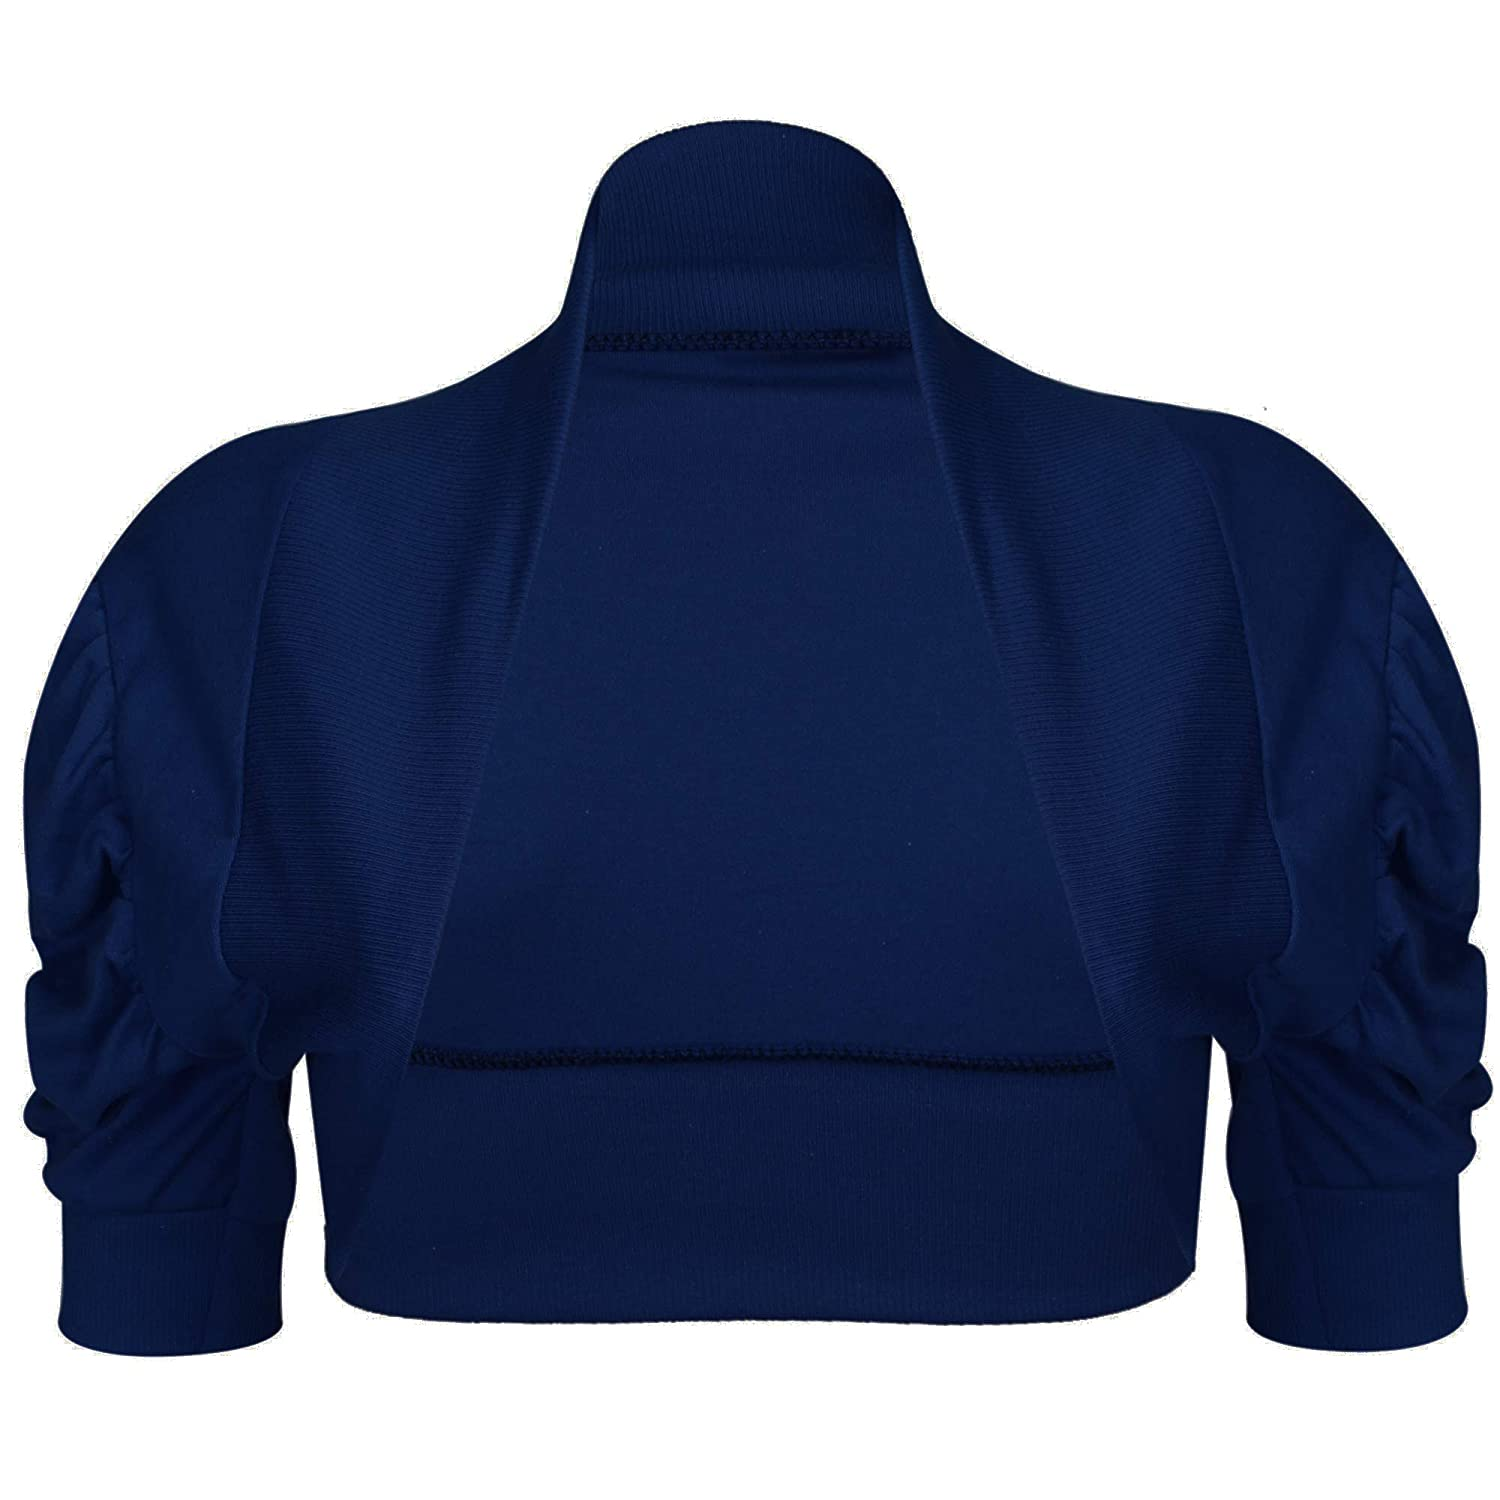 Cropped Crop Girls Kids Stretchy Ruched Sleeves Bolero Shrug Cardigan Top (Age 11-12 Years, Navy)